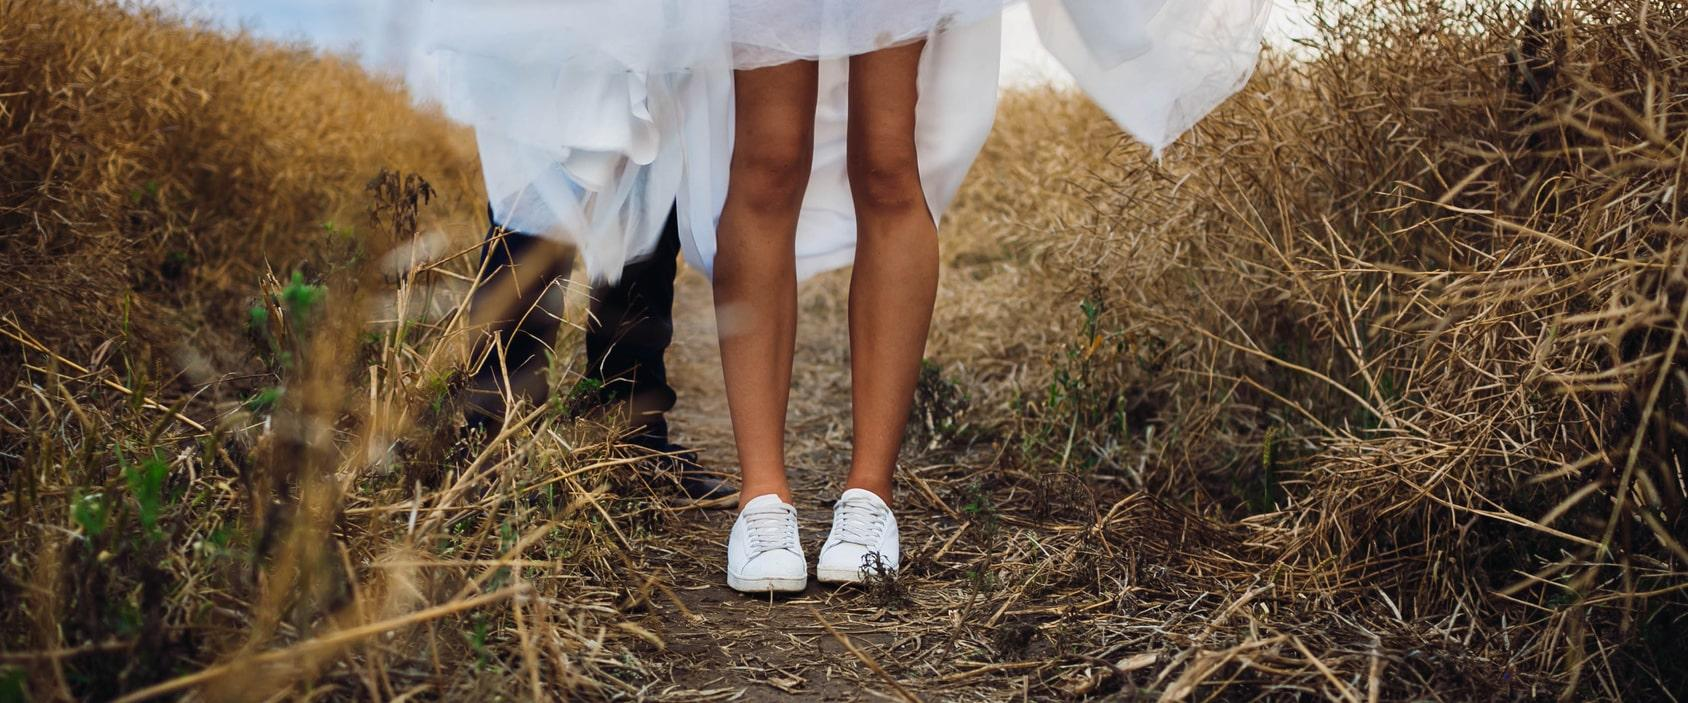 33 Comfortable Wedding Shoes That Are Oh-So-Stylish